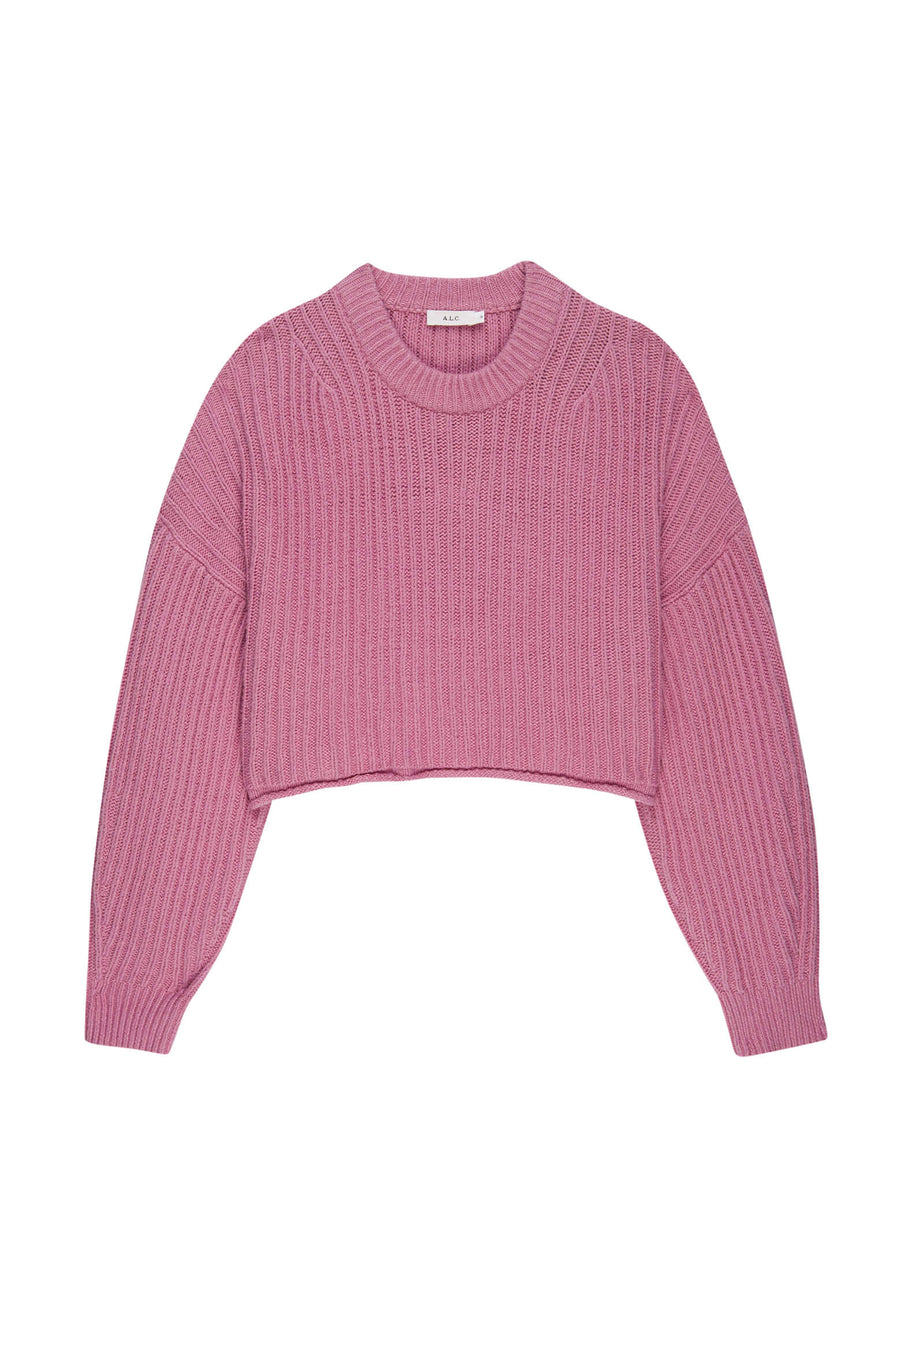 A.L.C Lianne Sweater in Pink Lady from The New Trend